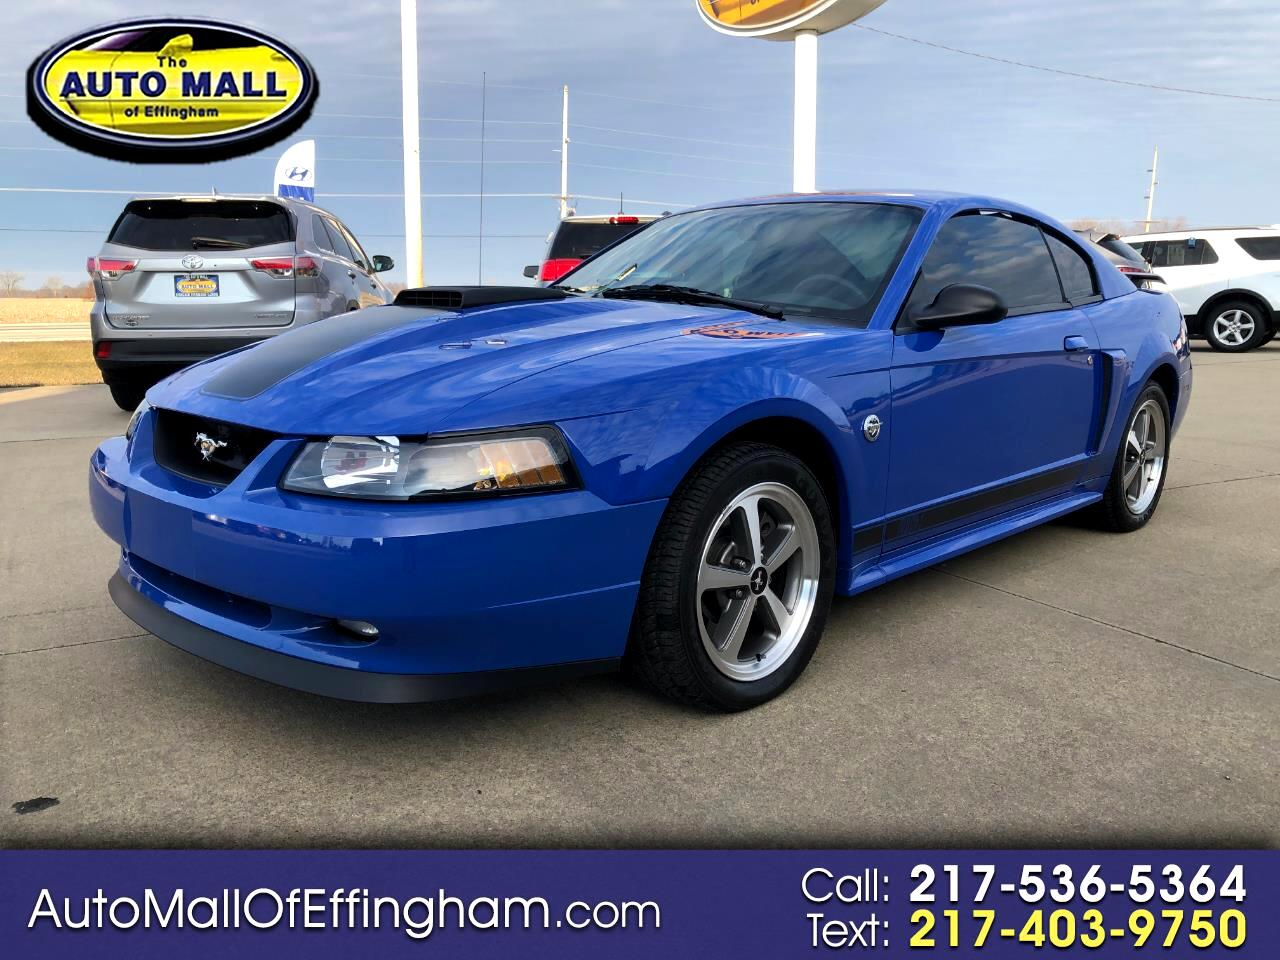 Ford Mustang 2dr Cpe Premium Mach 1 2004